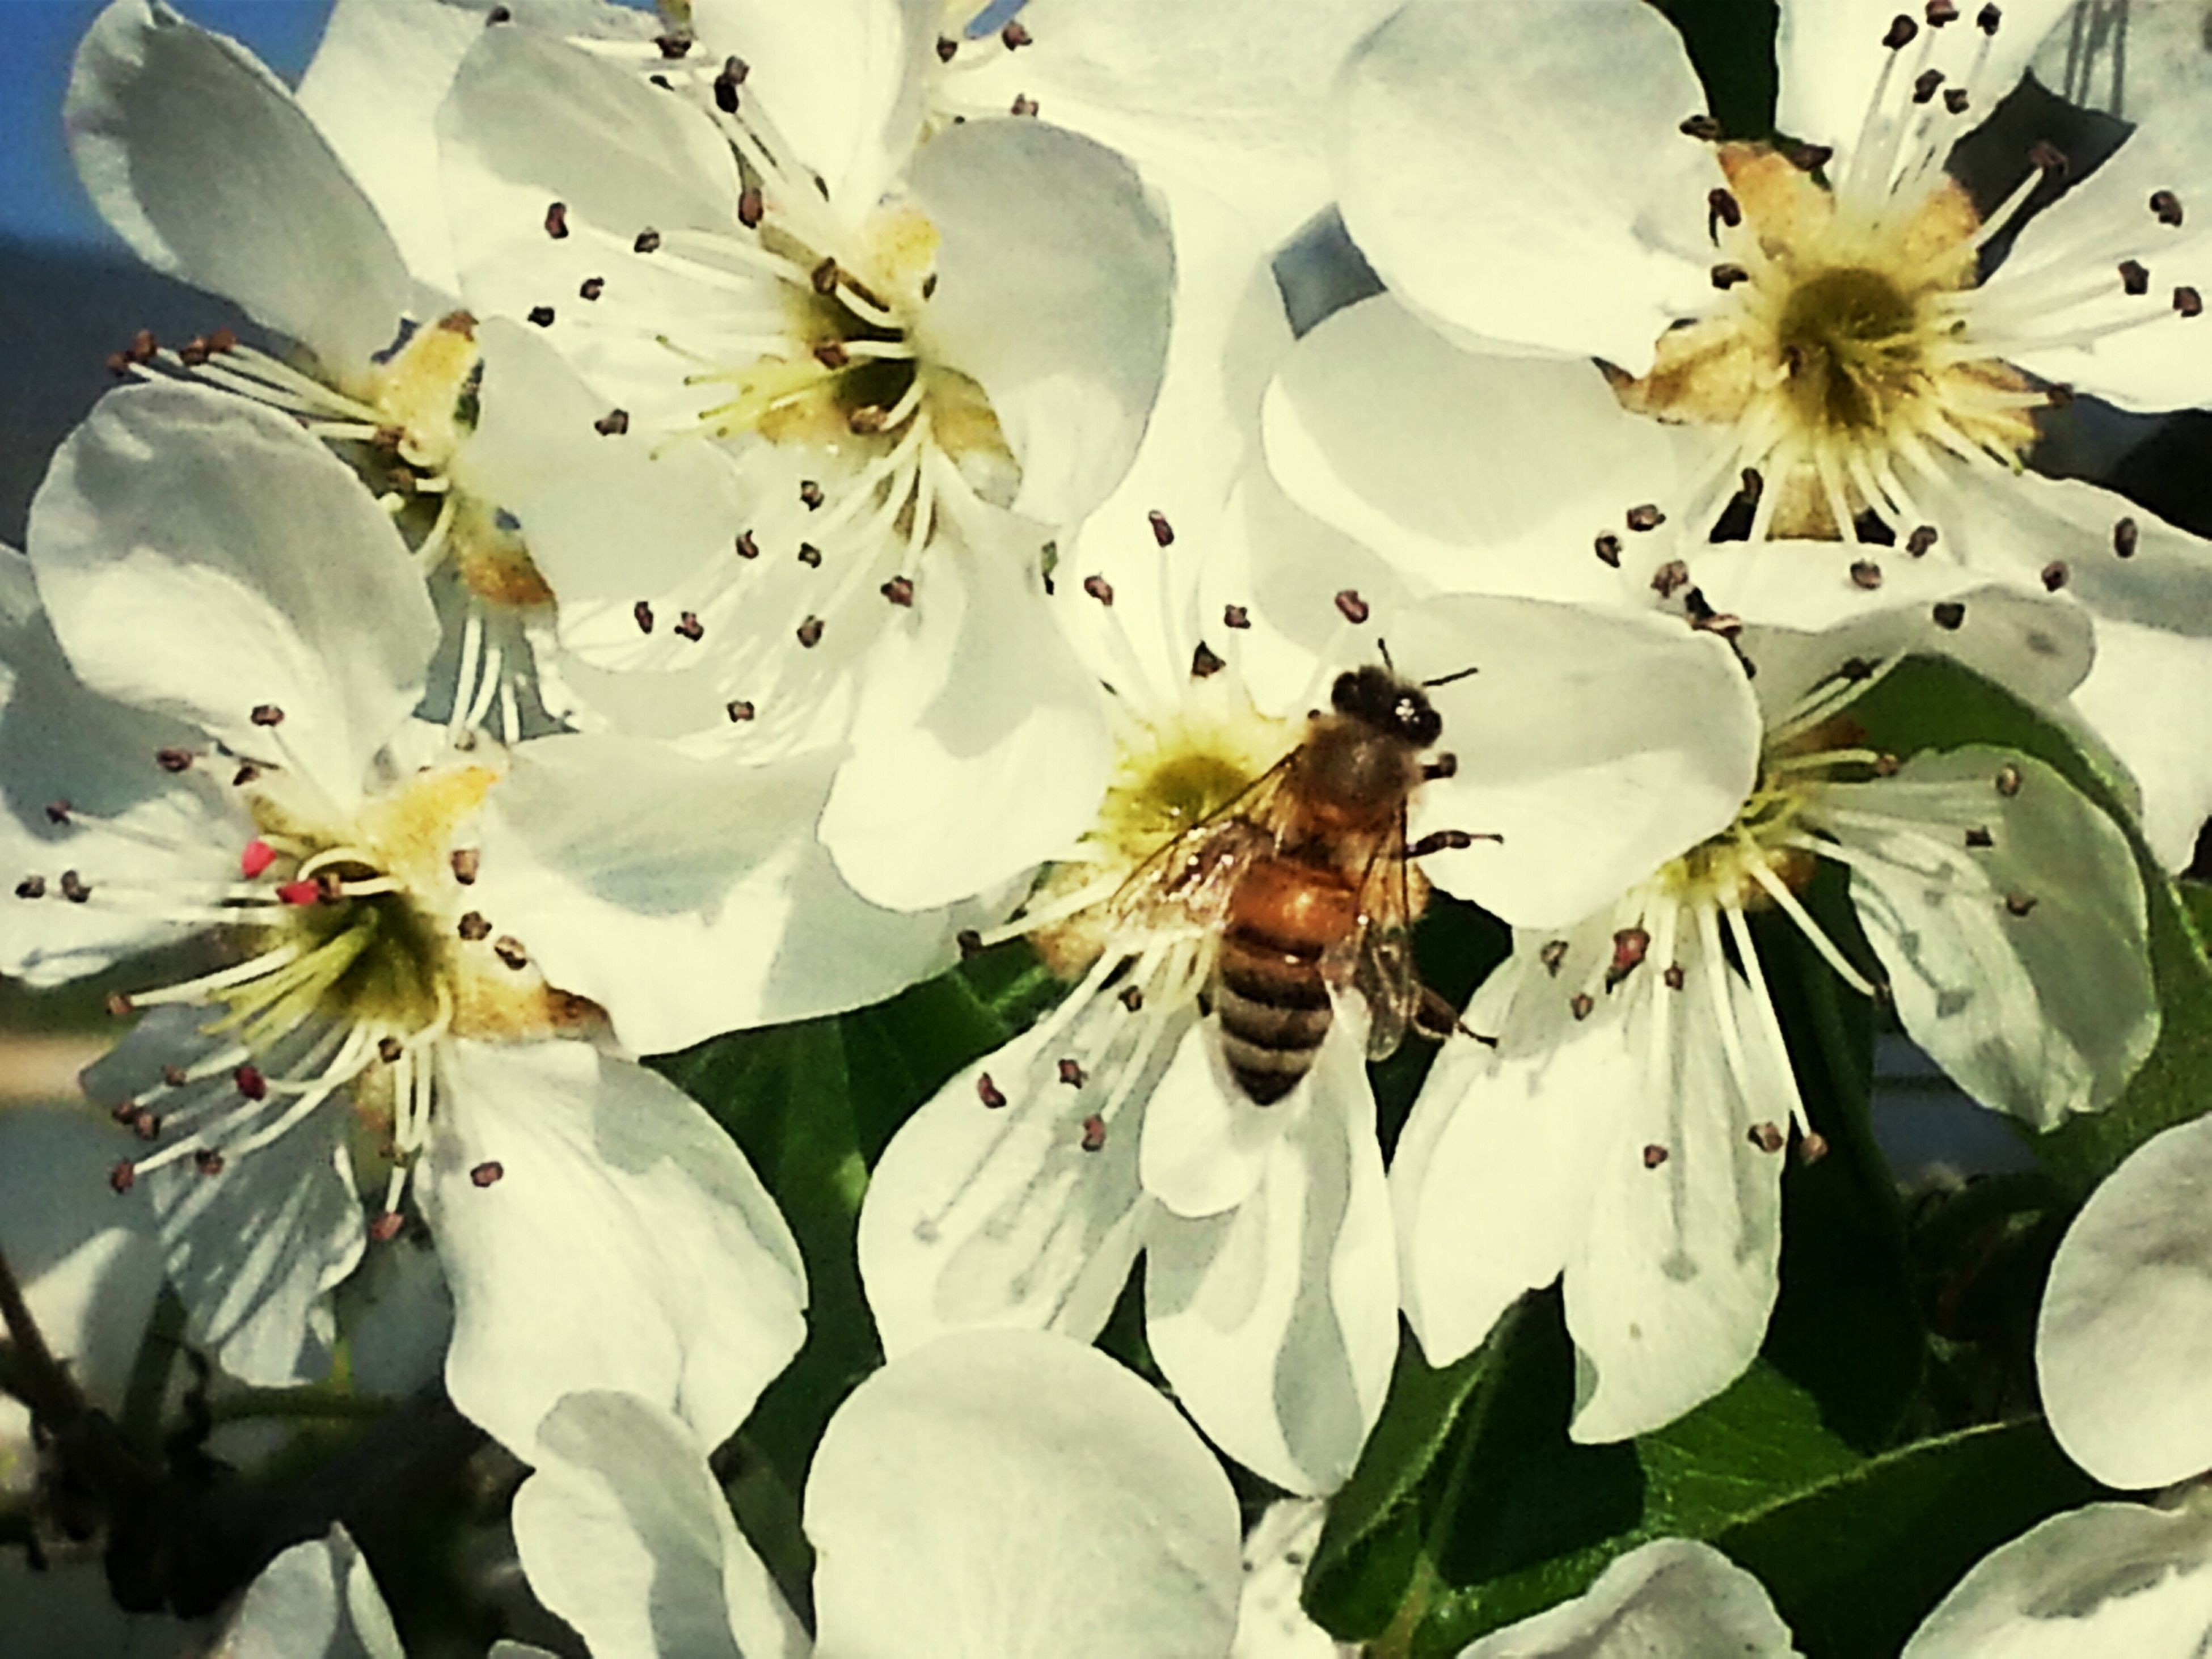 flower, animal themes, insect, animals in the wild, white color, wildlife, petal, fragility, freshness, one animal, flower head, beauty in nature, nature, pollen, bee, growth, pollination, close-up, white, blooming